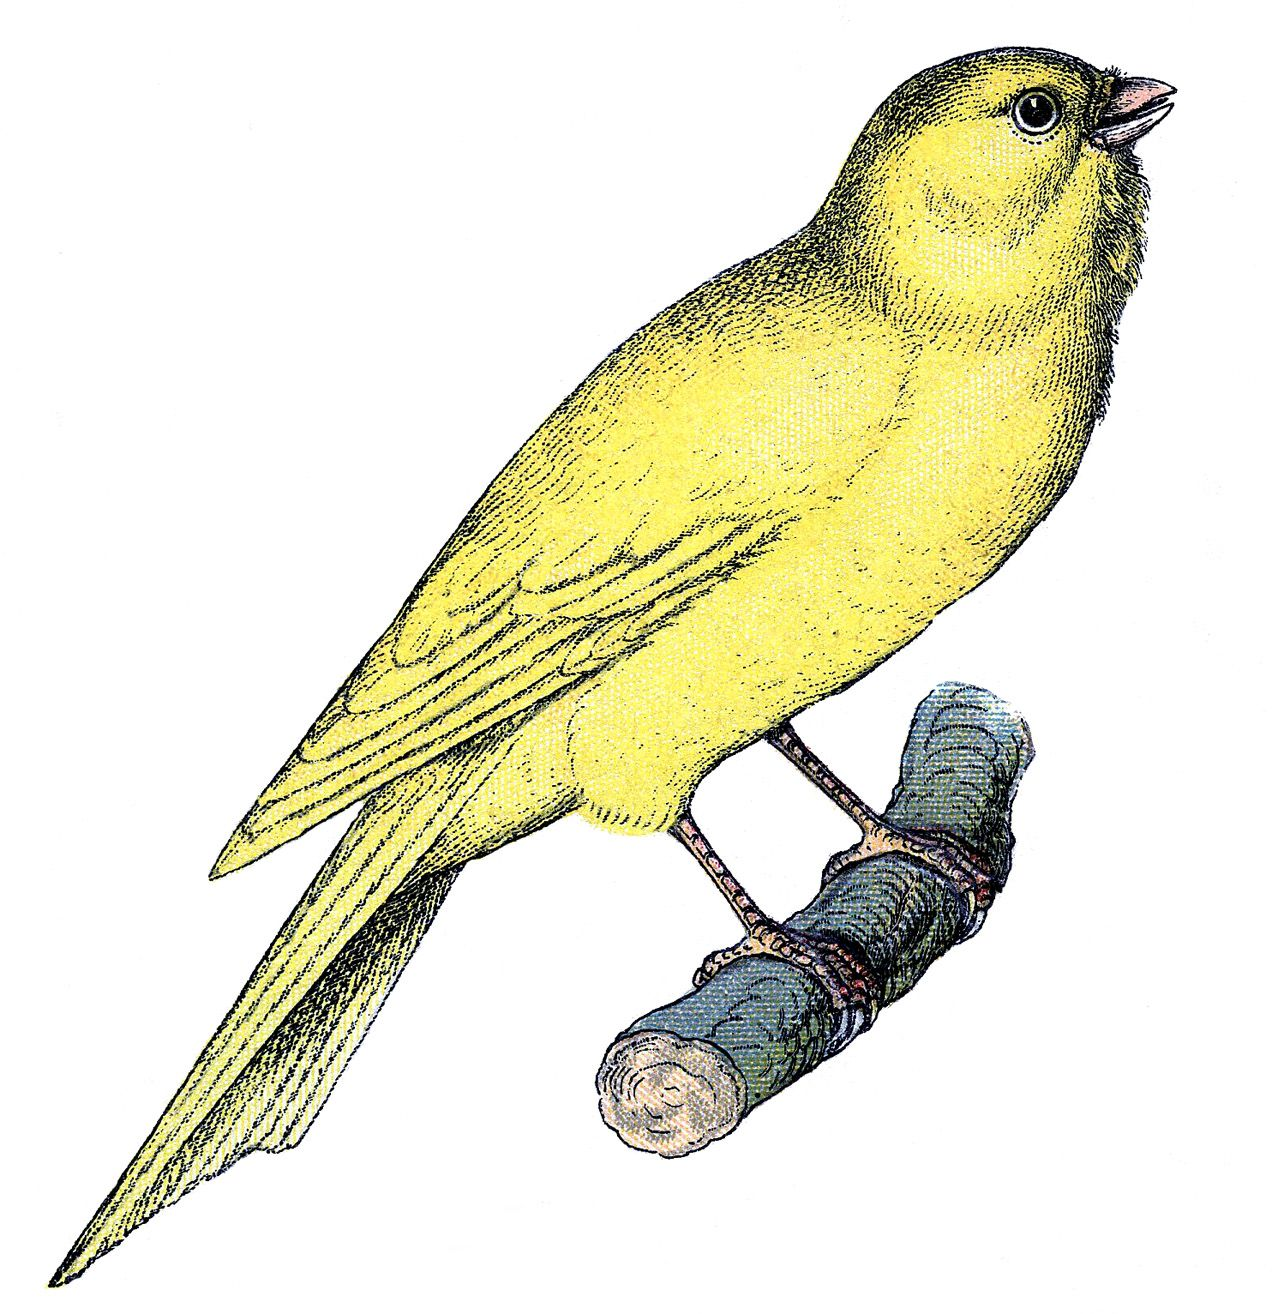 11 Canary Bird Images & Cages!.